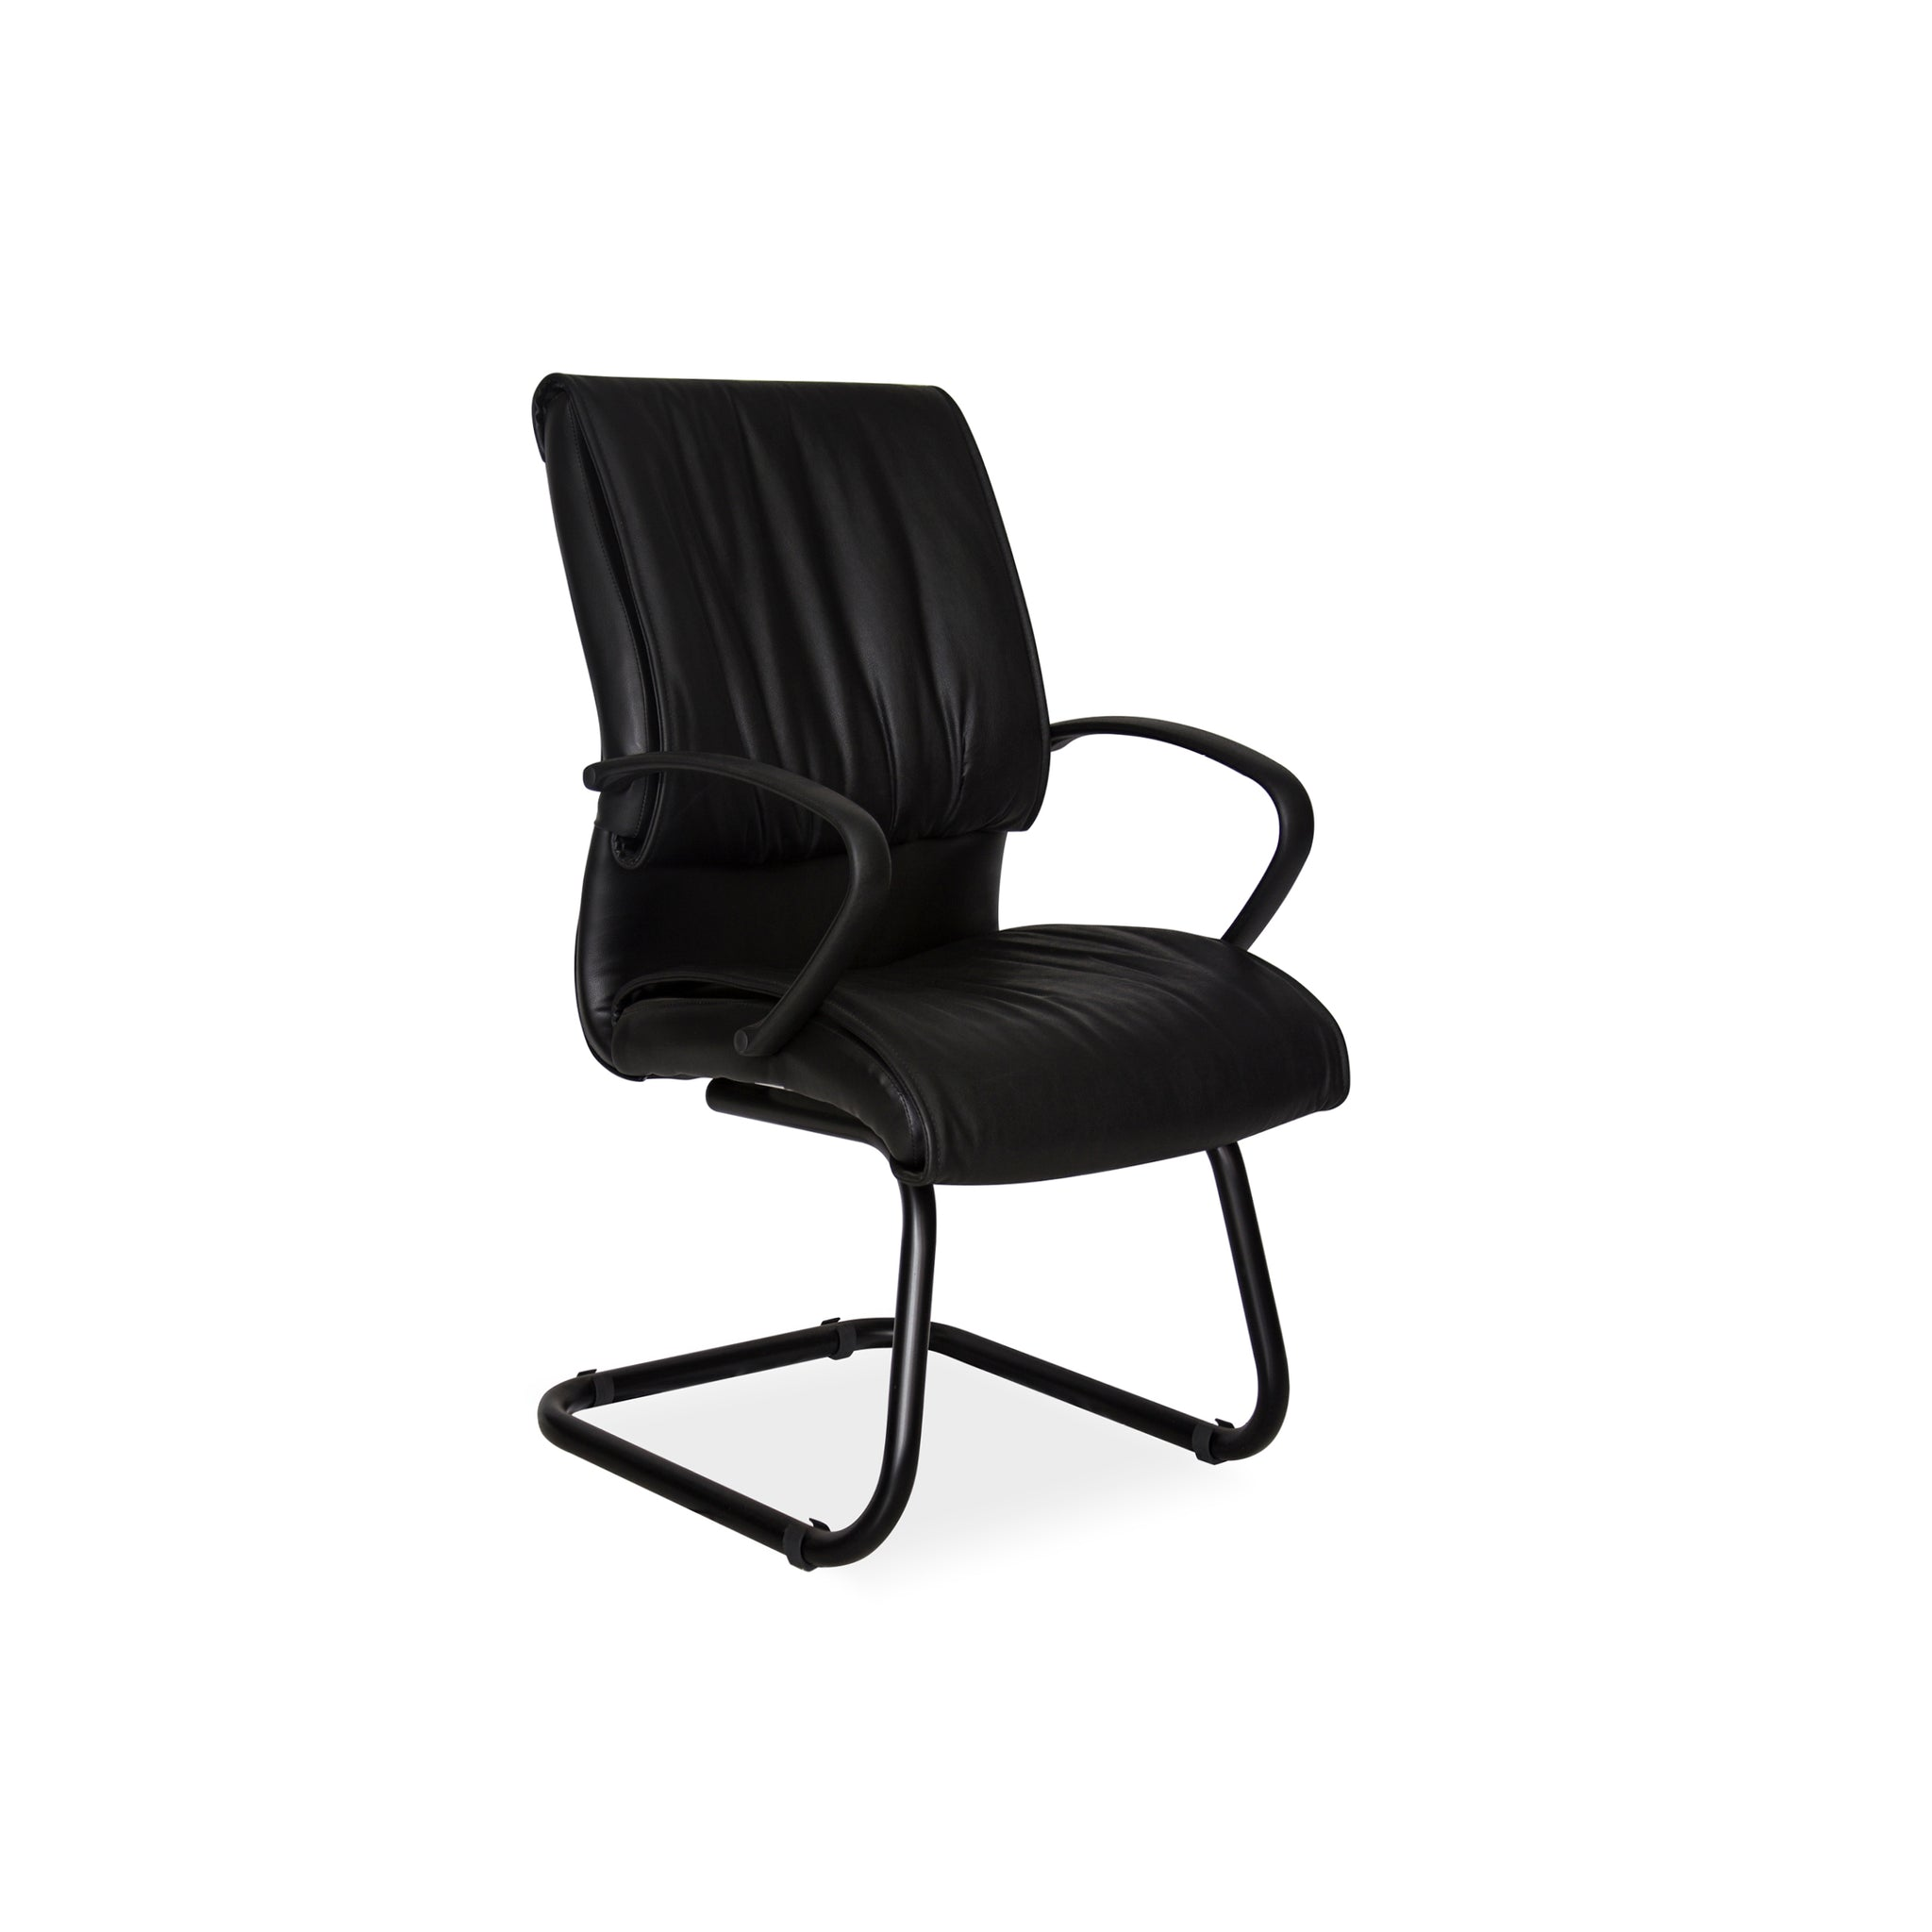 Hedcor Mirage visitors office chair